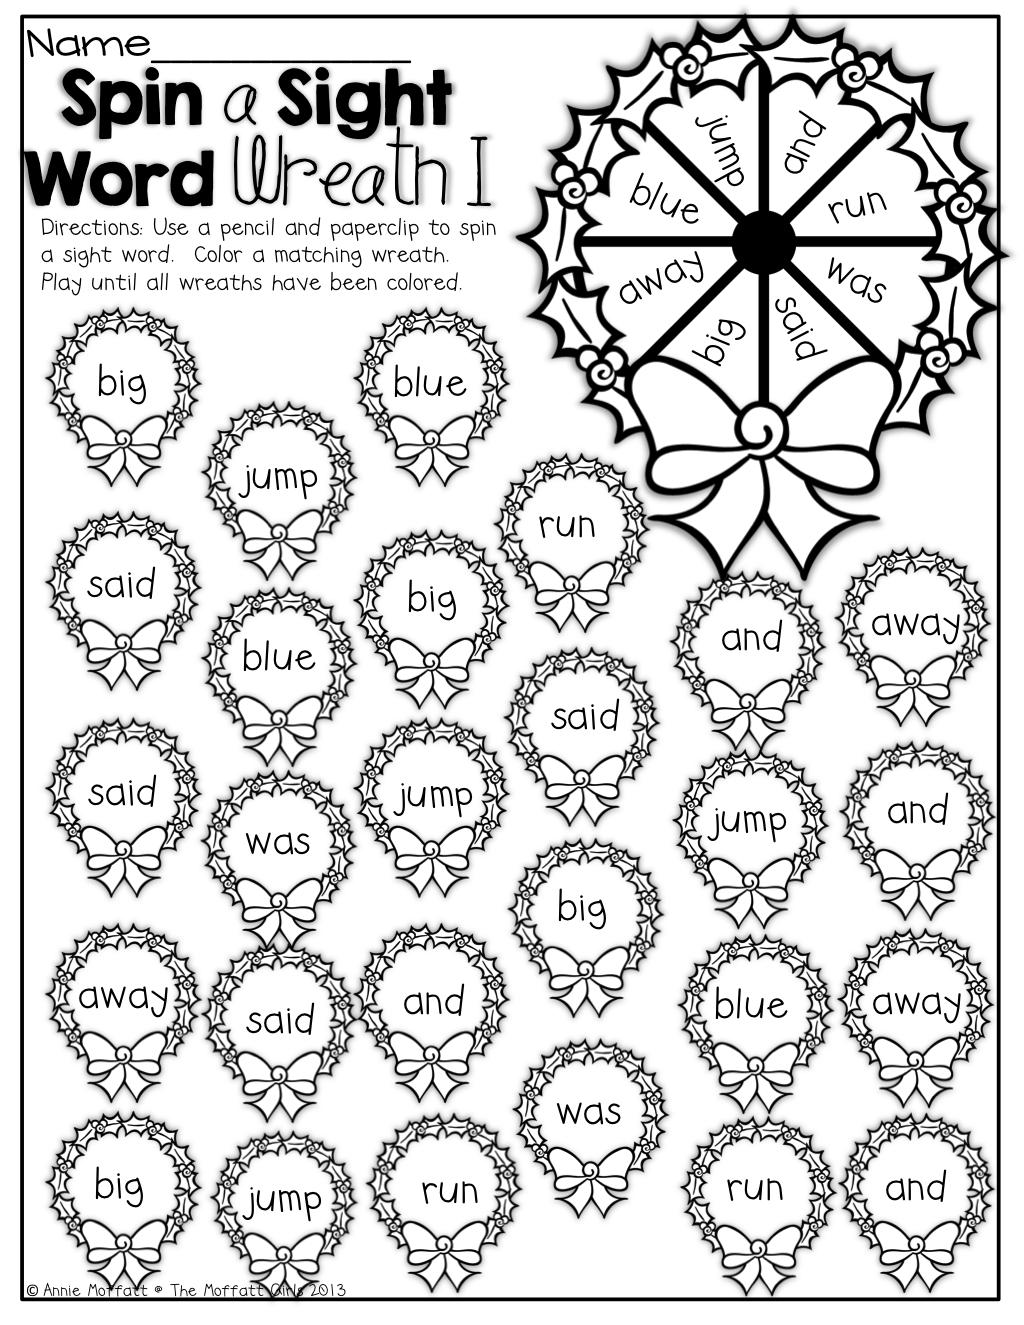 Spin A Sight Word With A Paperclip And Pencil And Color A